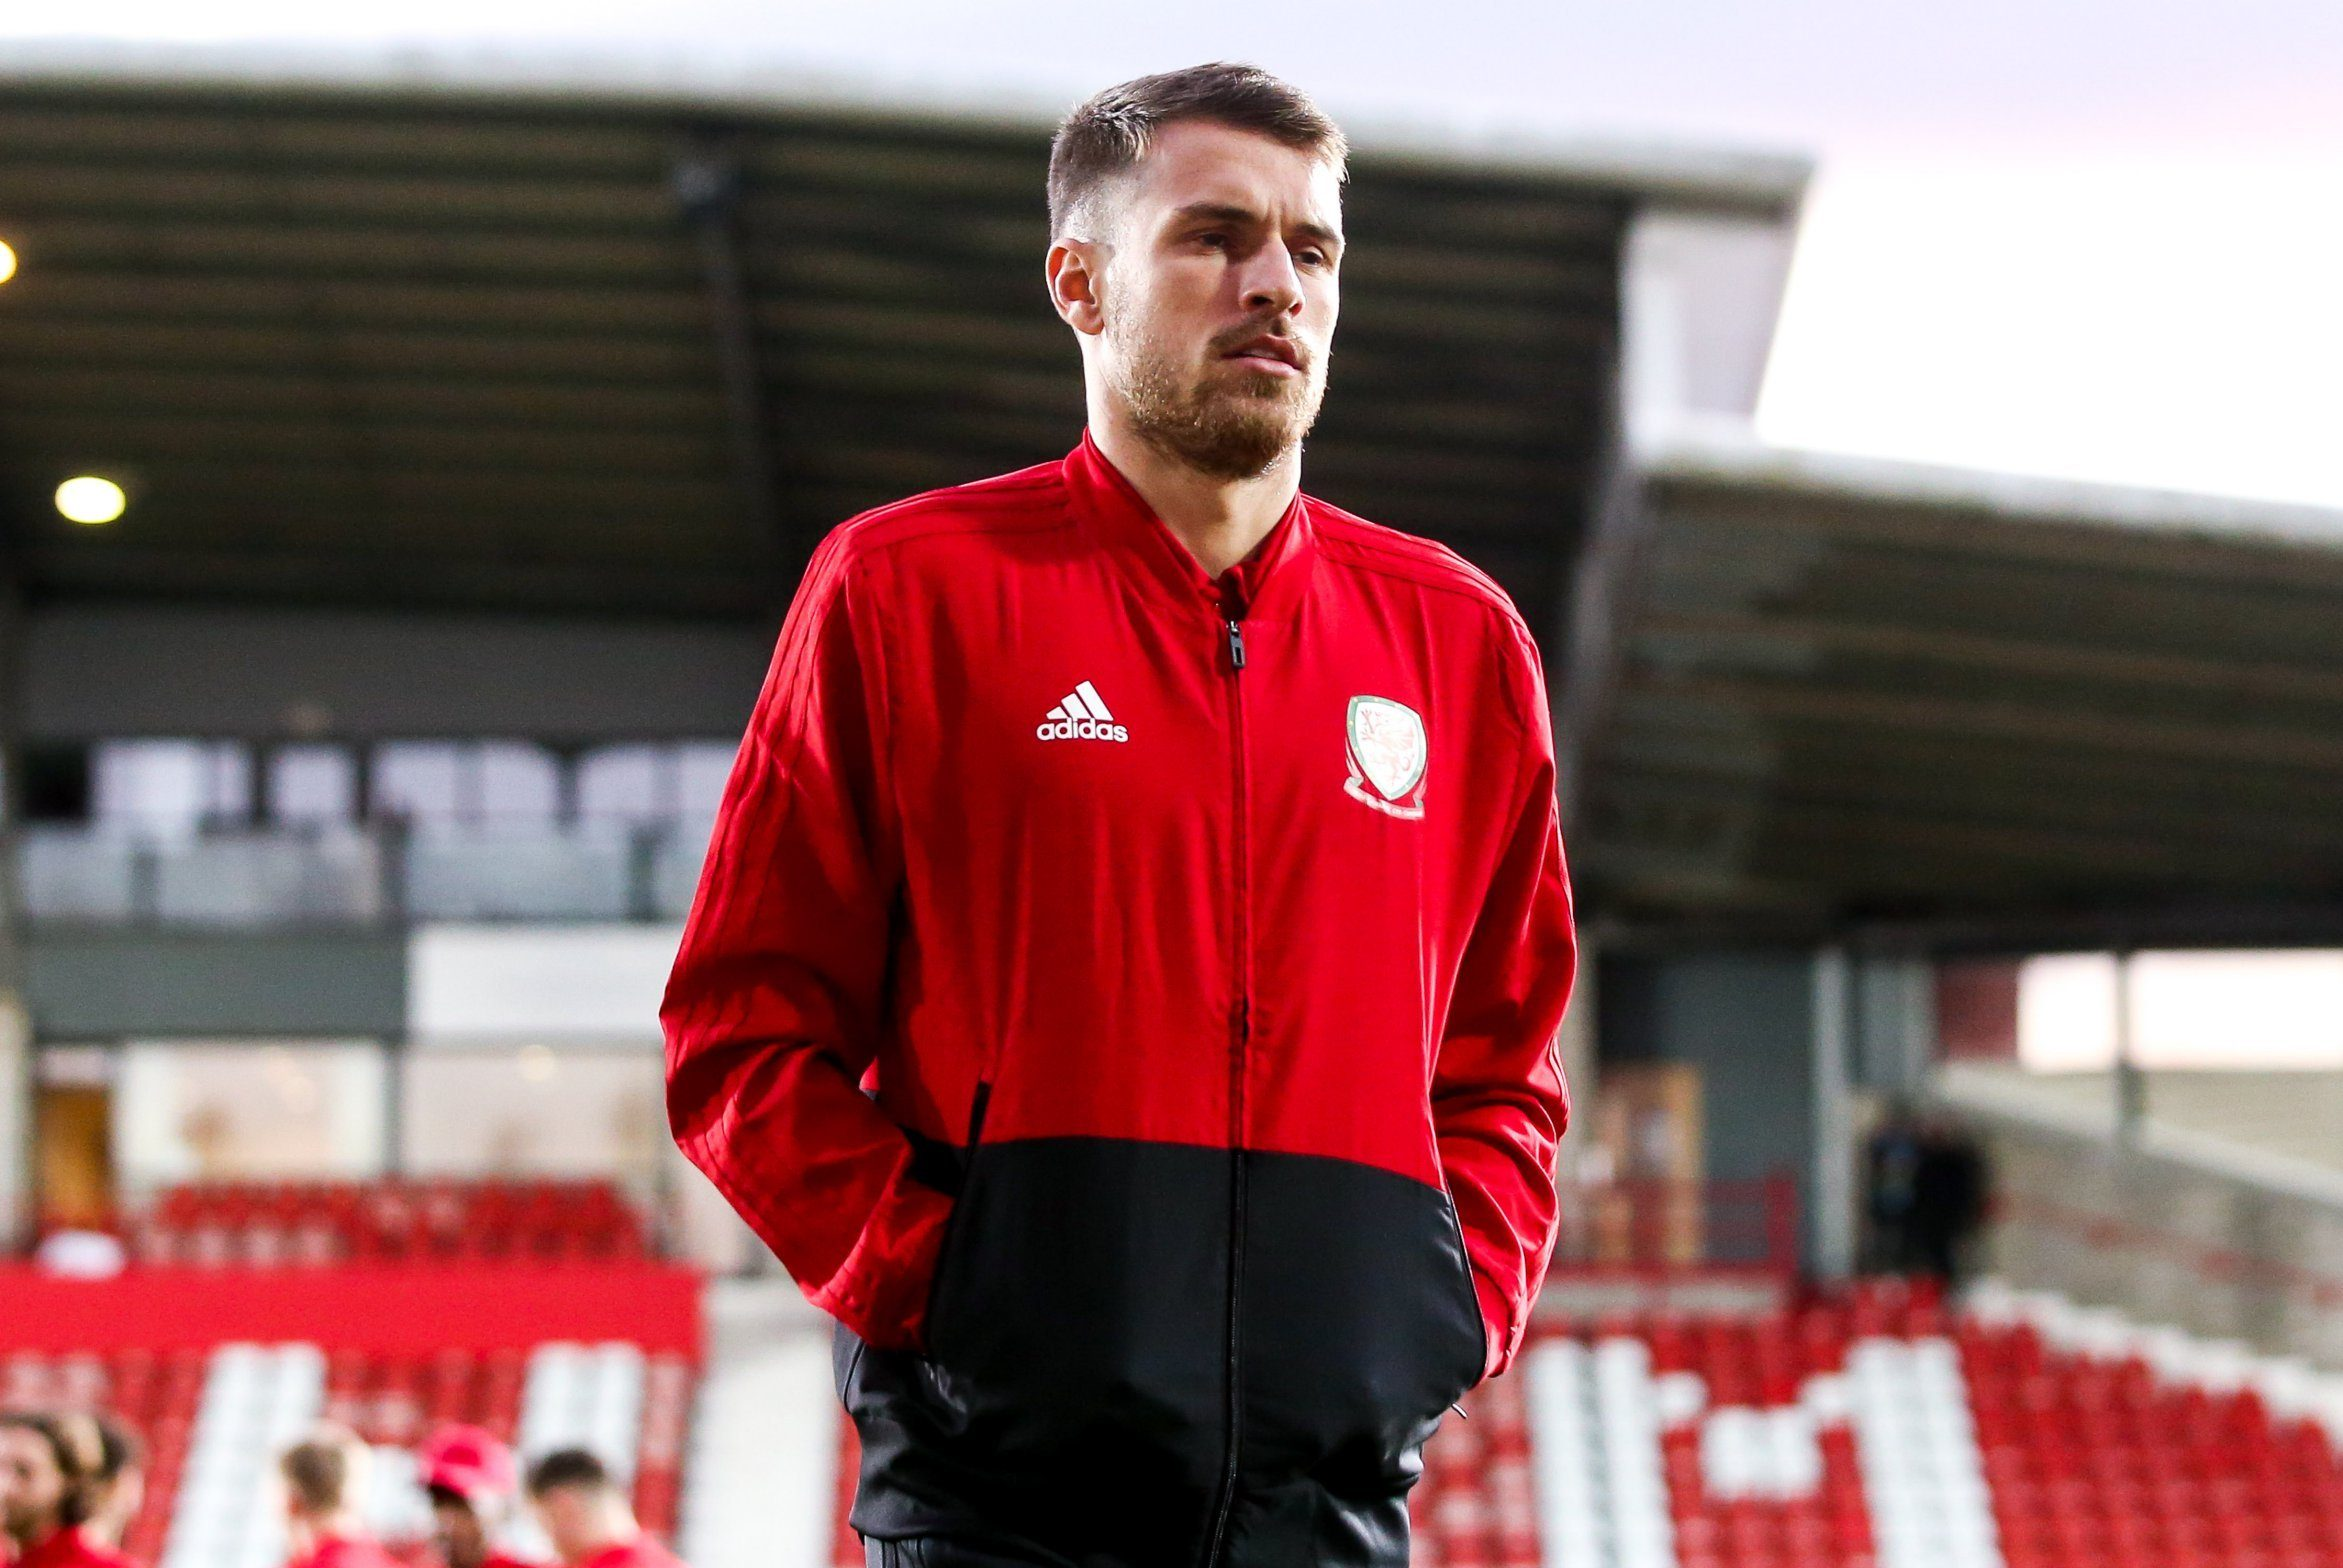 **IMAGE OUTSIDE OF SUBSCRIPTION DEAL, FEES APPLY** Editorial use only Mandatory Credit: Photo by Robbie Stephenson/JMP/REX (10161388q) Aaron Ramsey of Wales Wales v Trinidad and Tobago, UK - 20 Mar 2019